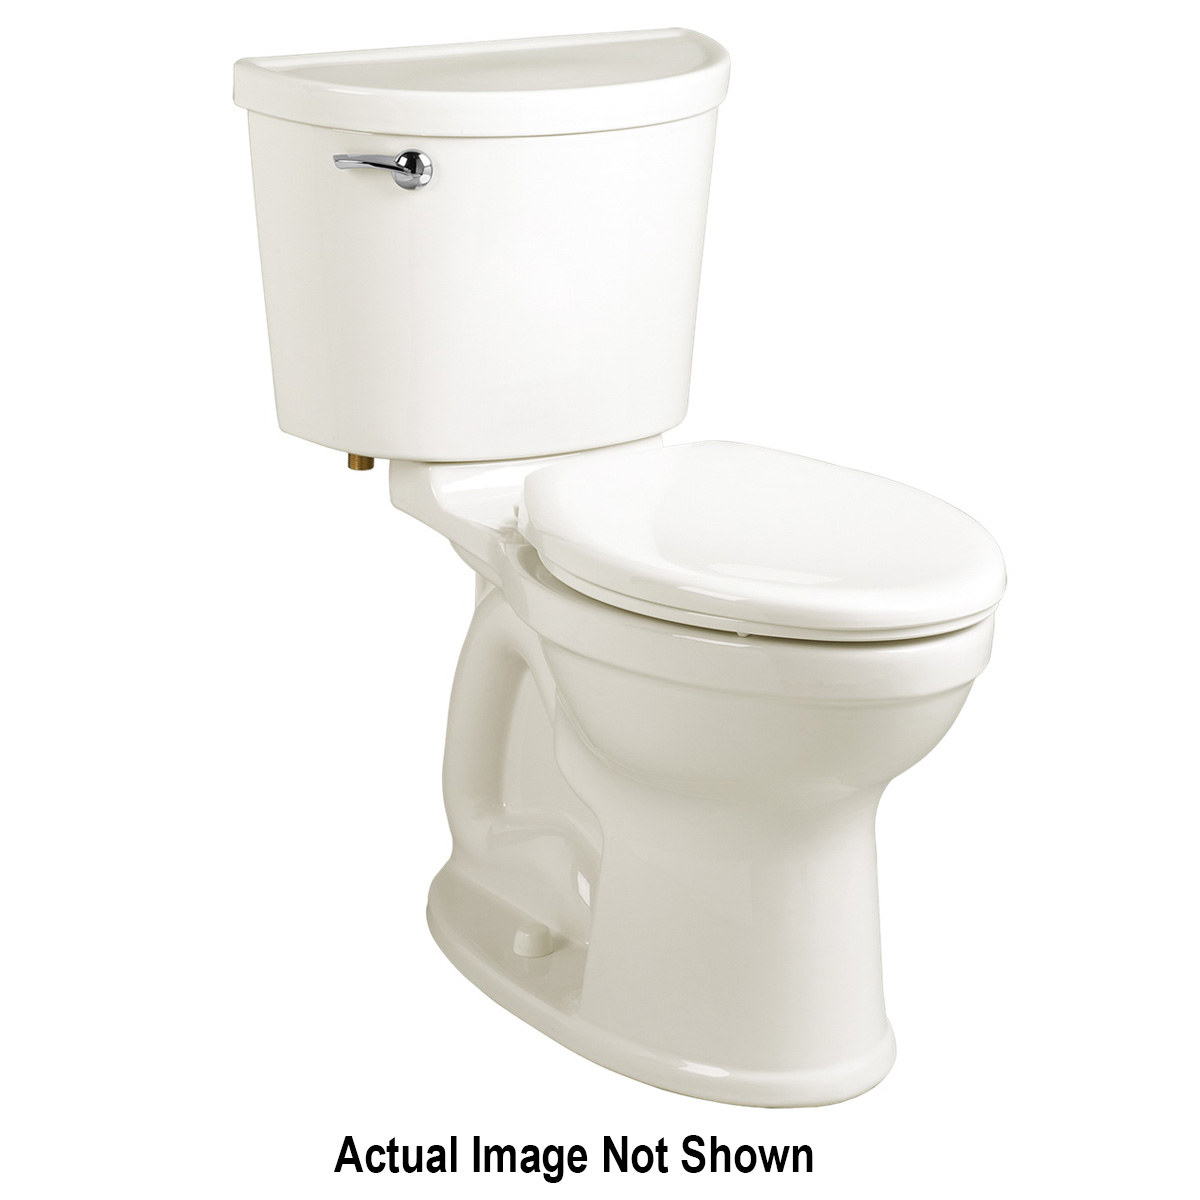 American Standard 3195A101.020 Champion® Pro™ Right Height™ Toilet Bowl, Elongated, 8 x 9 in Water Surface, 16-1/2 in H Rim, 2-3/8 in Trapway, Import